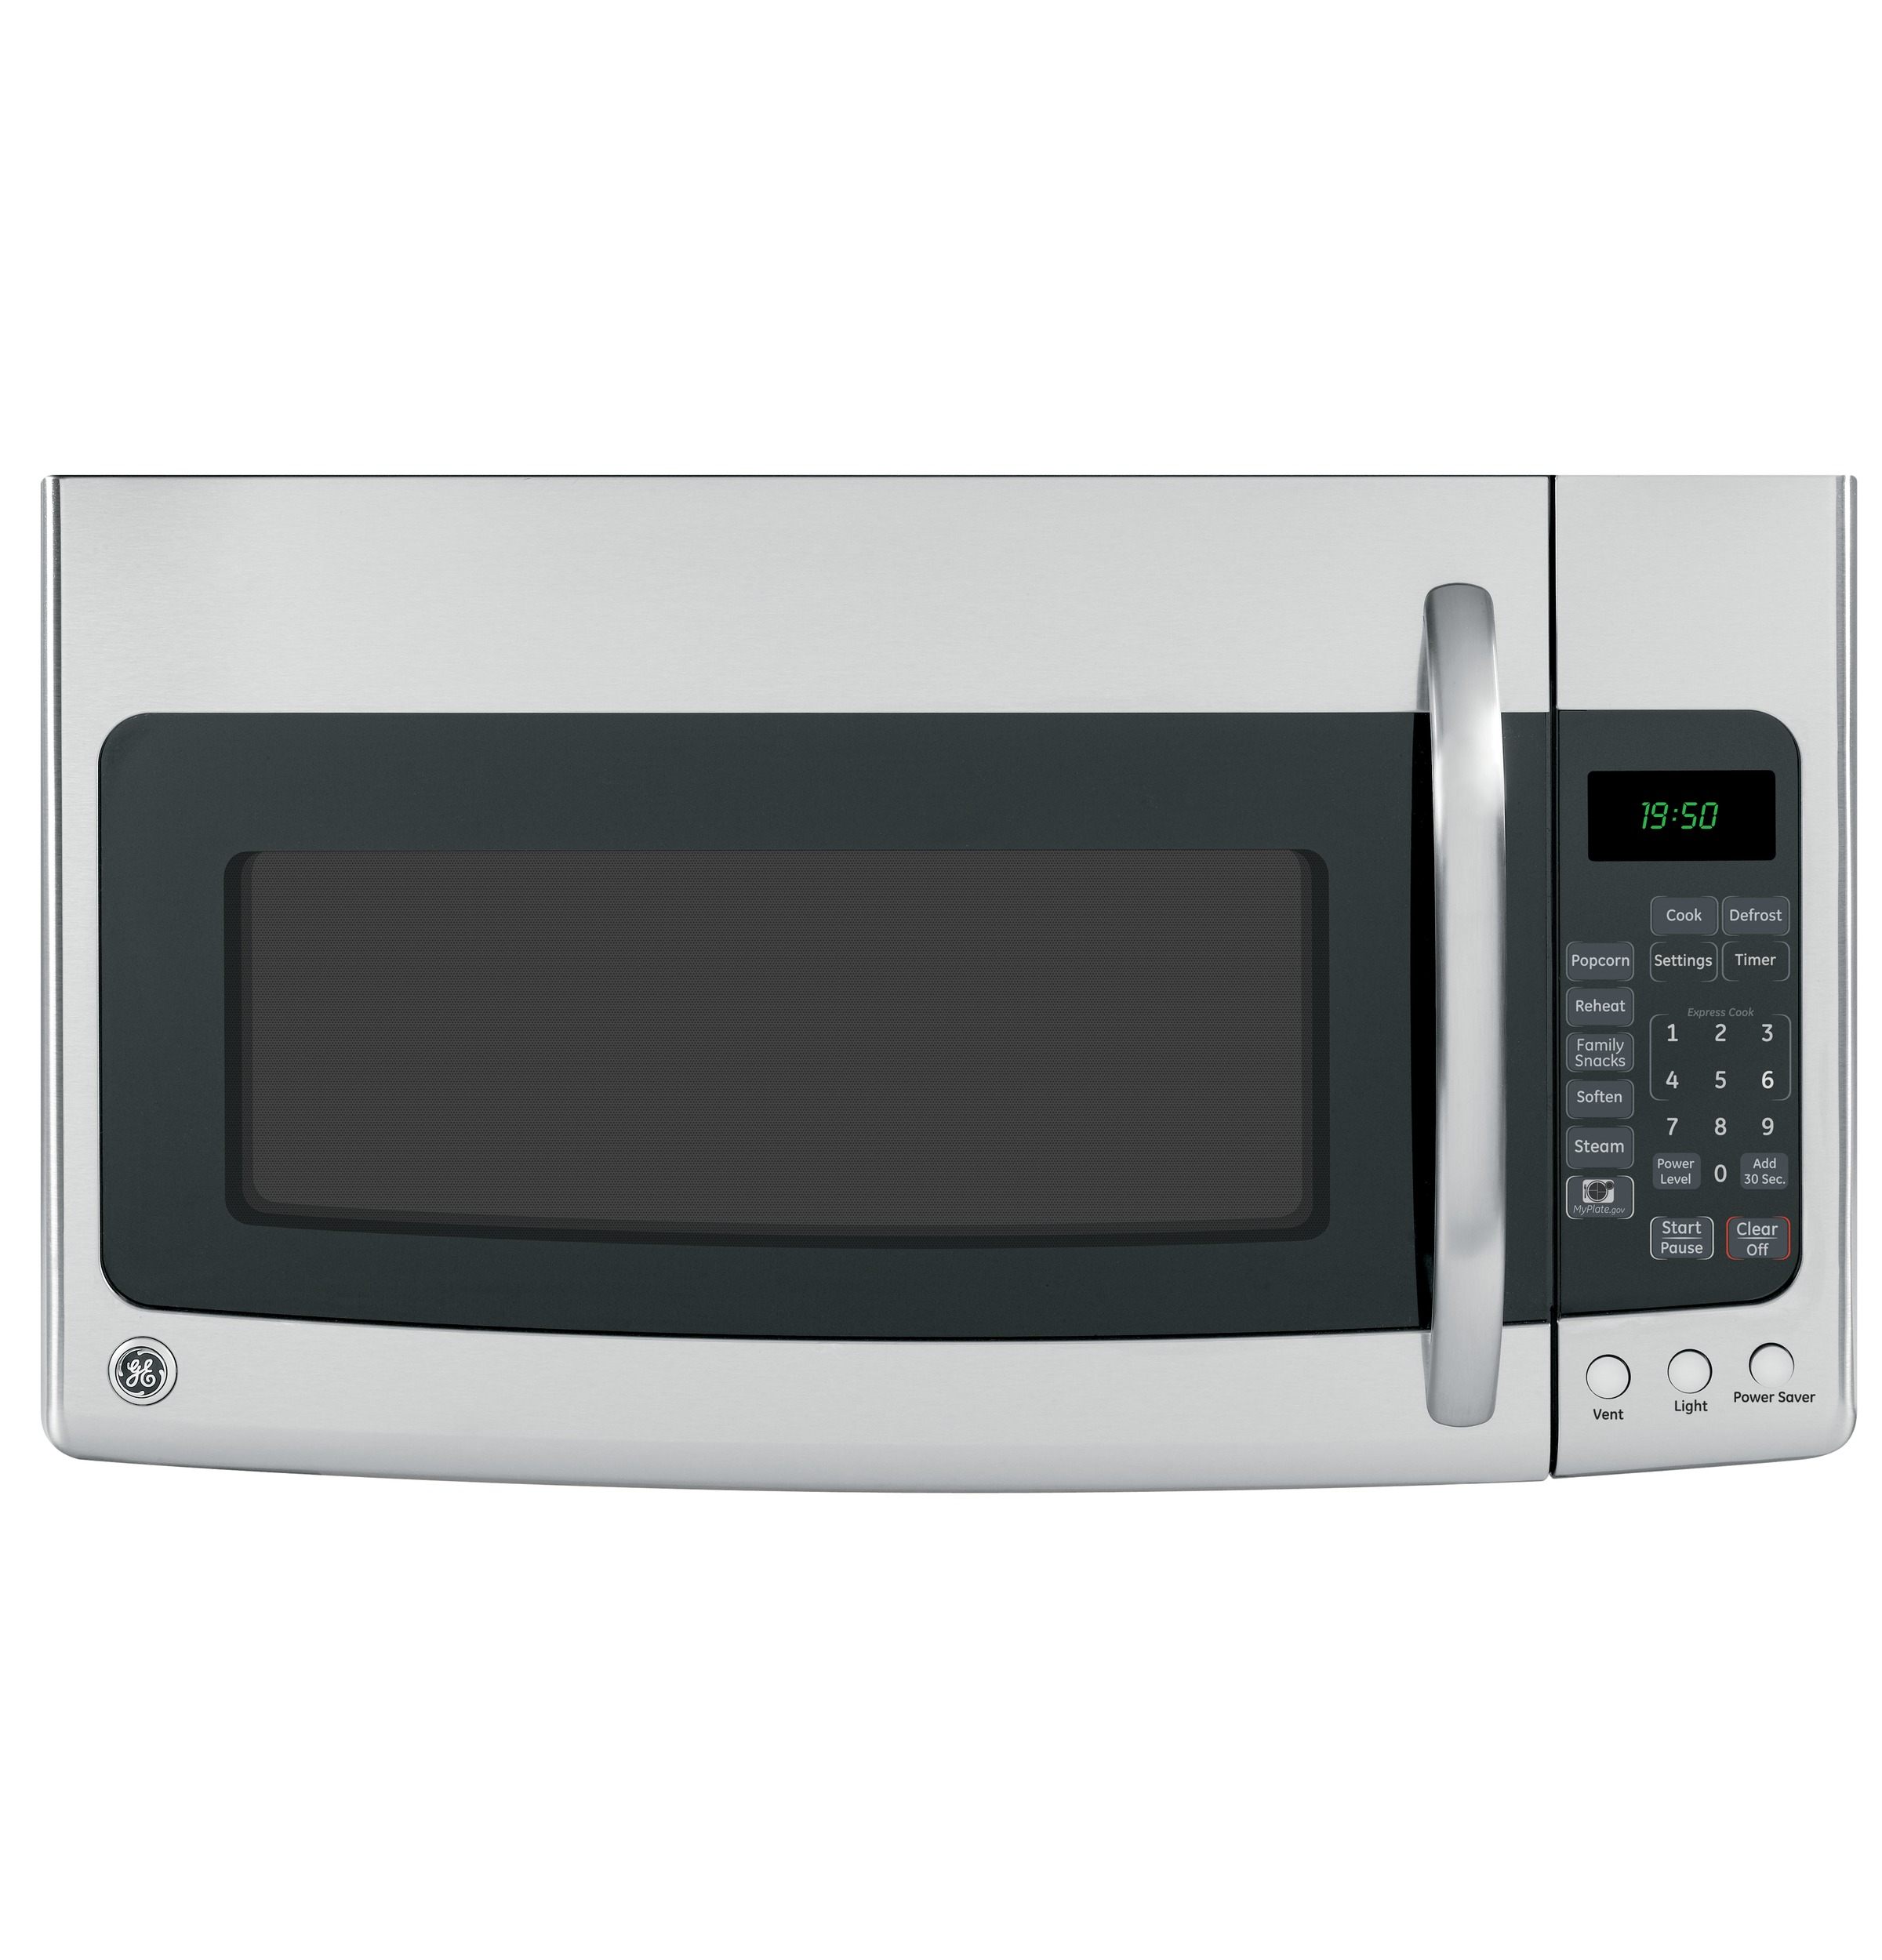 Ge Microwave Ovens ~ Ge spacemaker over the range microwave oven